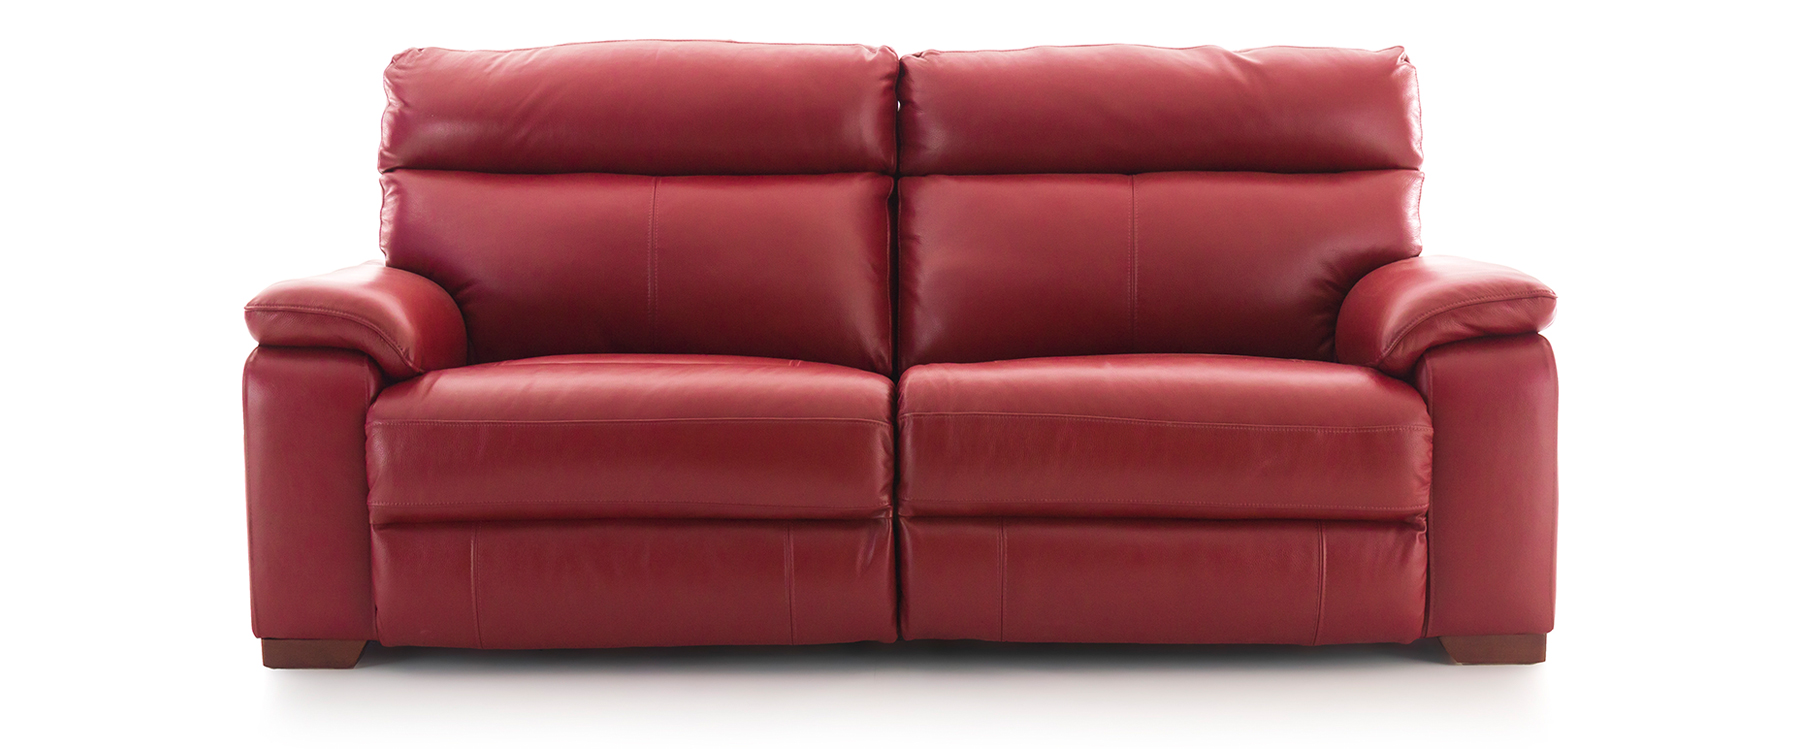 Leather sofas northern ireland for Living room furniture northern ireland